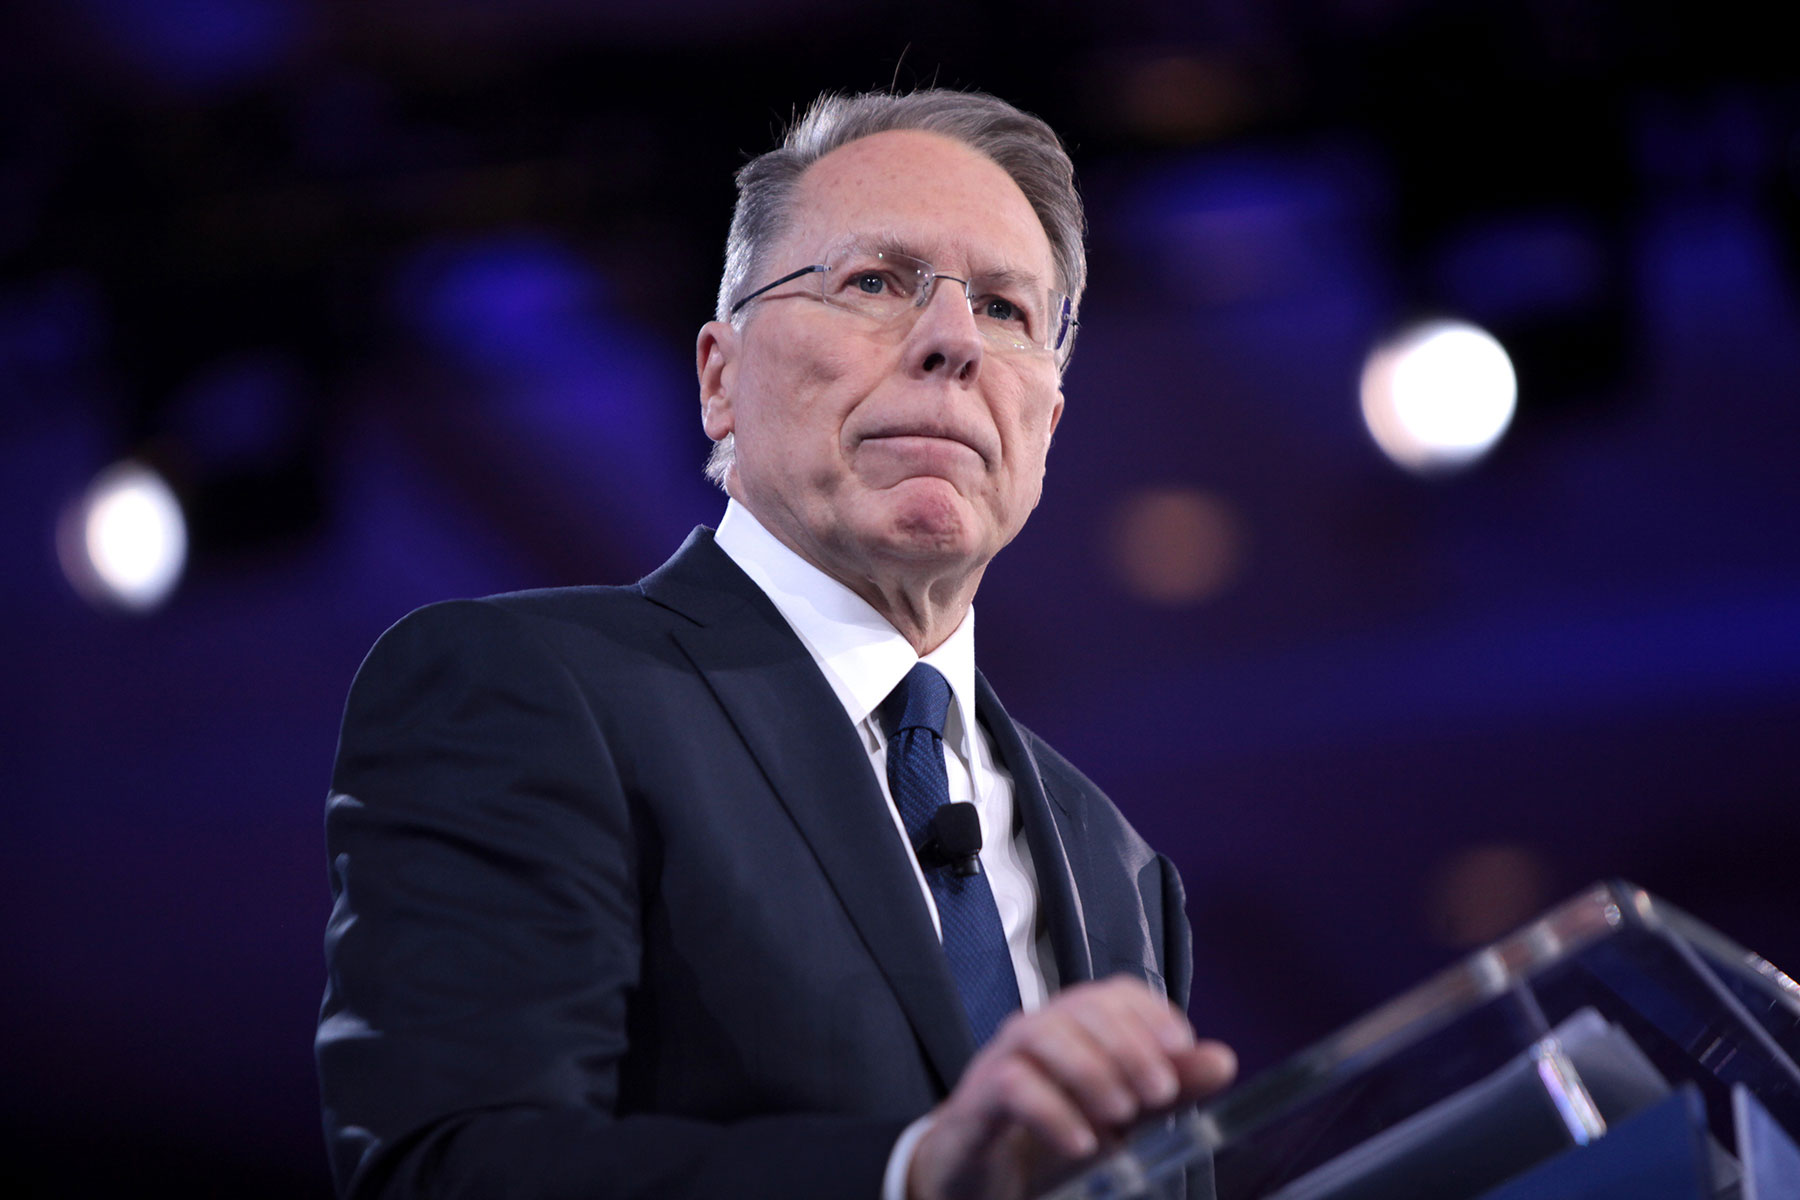 NRA Tells Judge It Fears Harassment in Suit Over Florida Gun Law